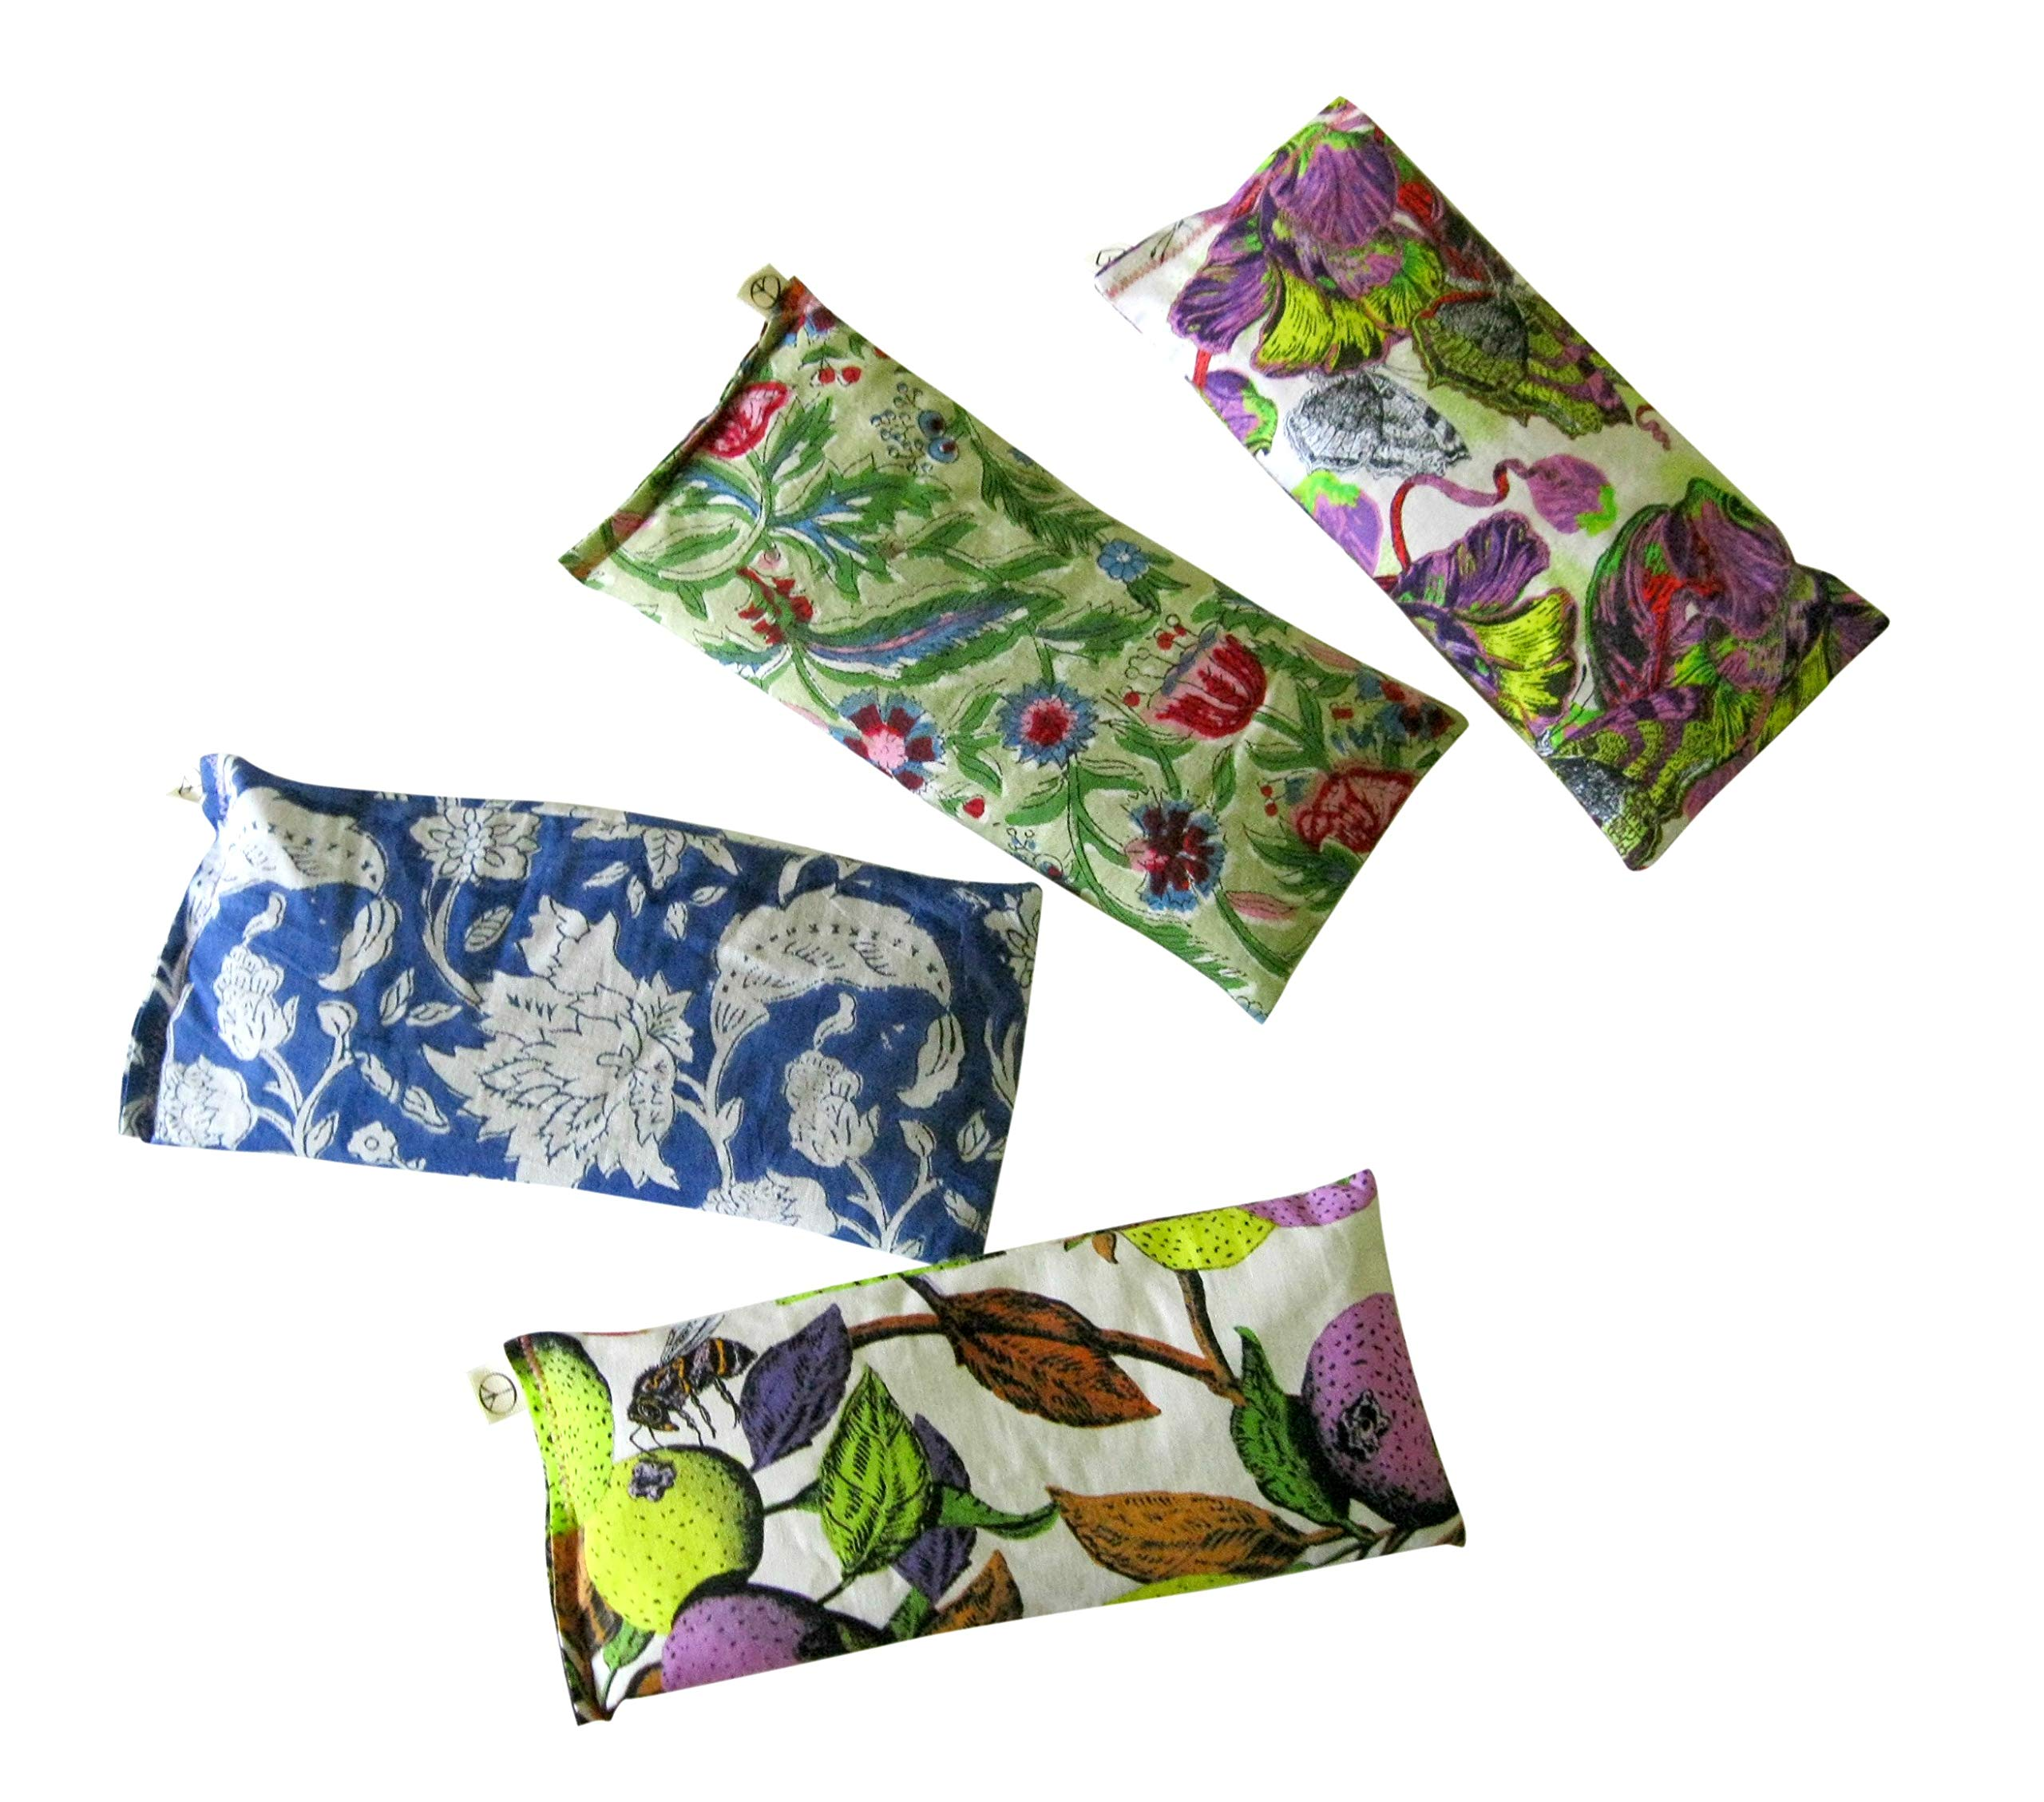 Scented Eye Pillows - Pack of (4) - Soft Cotton 4 x 8.5 - Lavender Flax Seed - Relax Soothe - yoga - tropical flowers palm leaves blue green pink fruit bird by Peacegoods